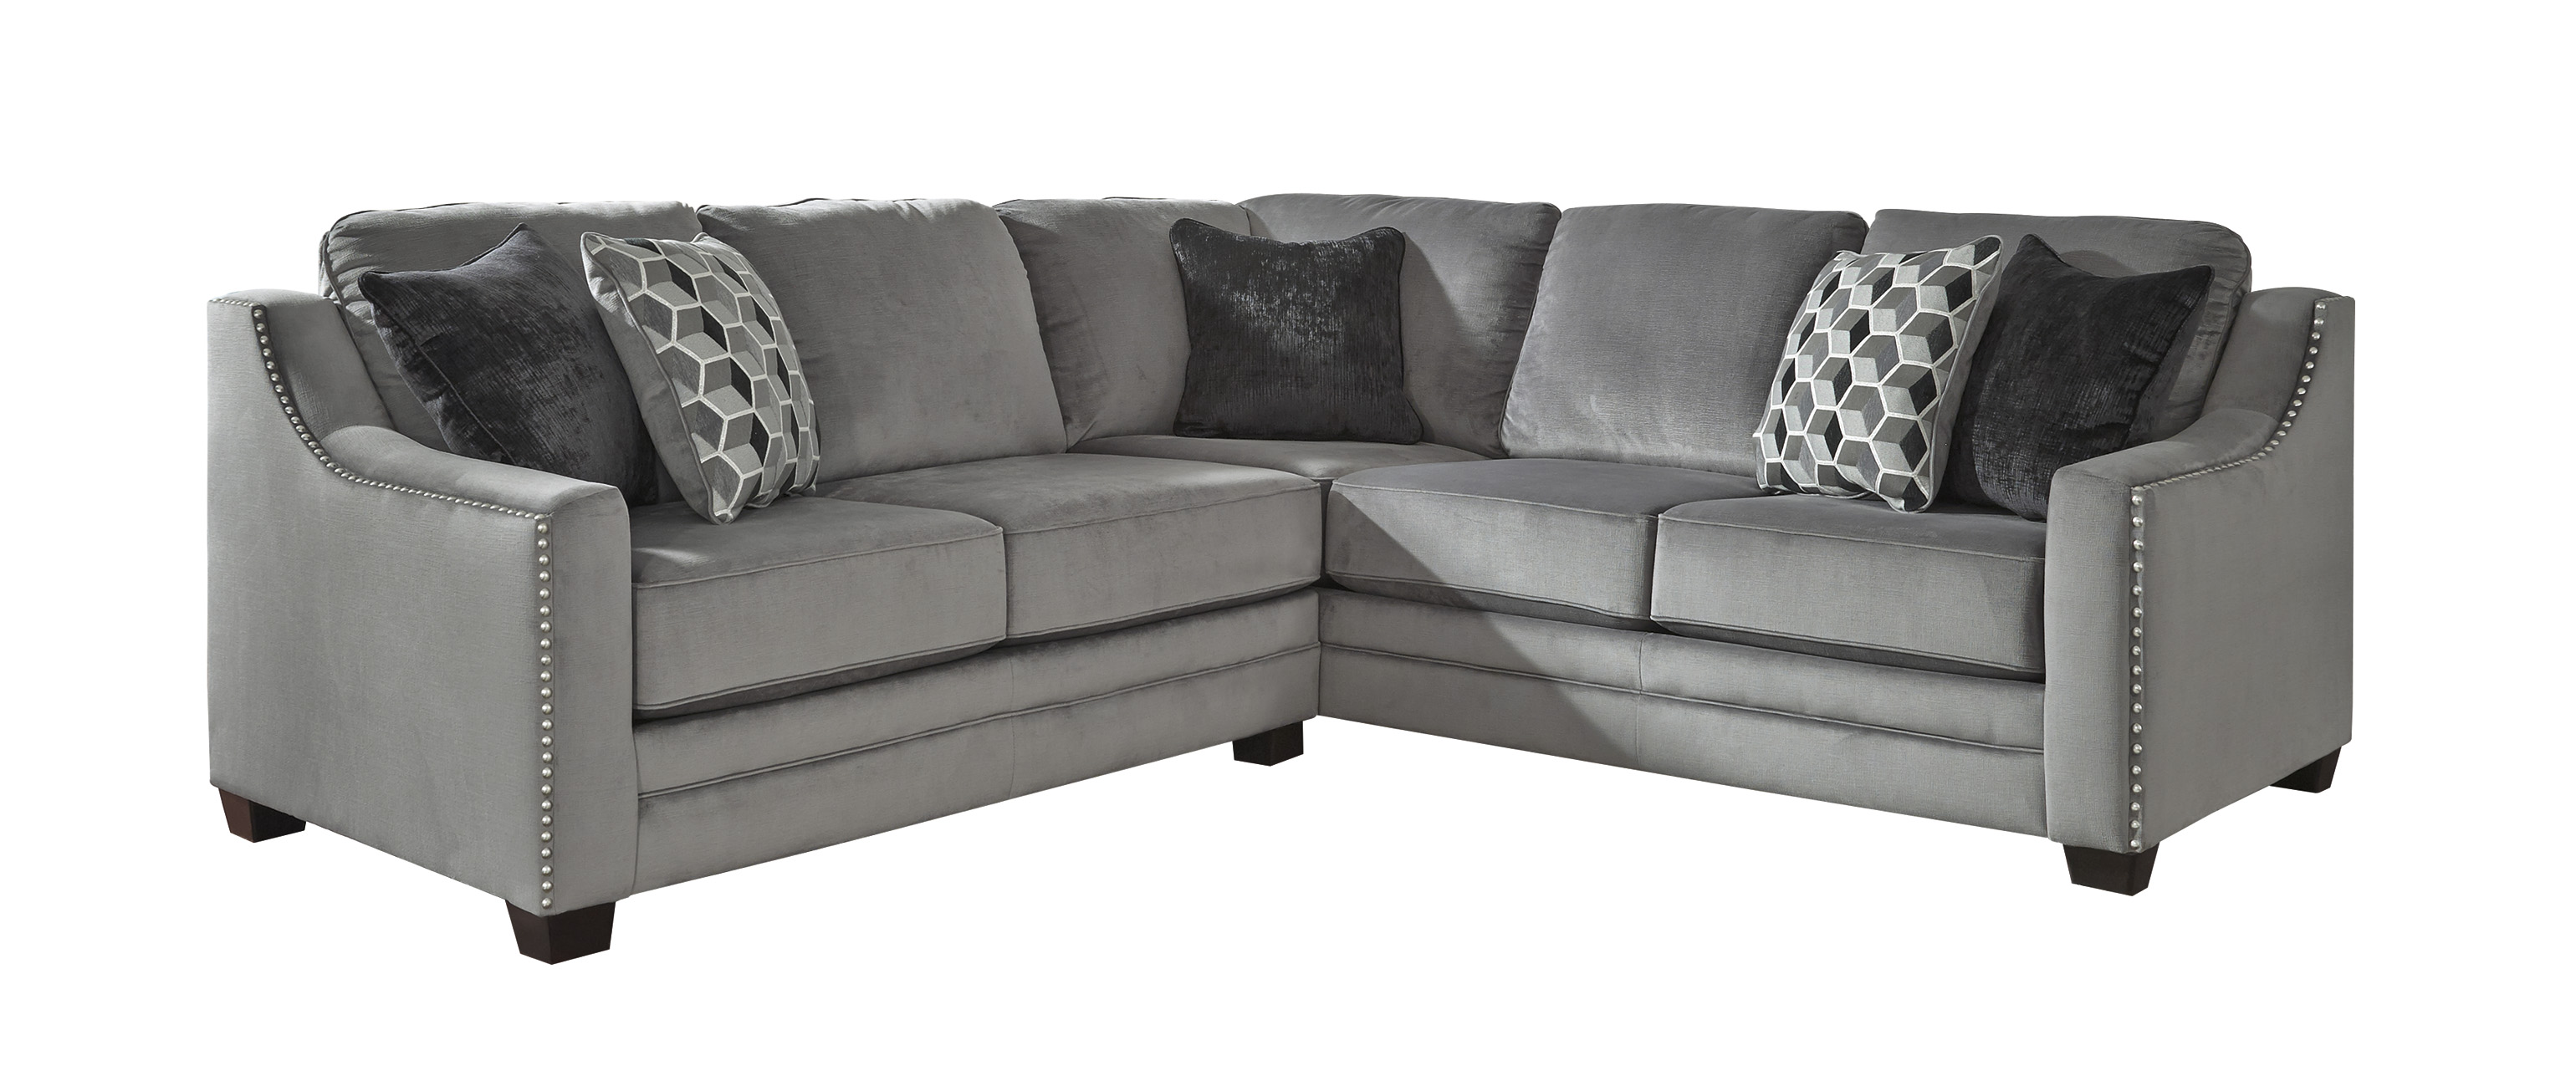 Bicknell Charcoal 2 Pc Sectional Sofa With Left Arm Facing Loveseat Right Corner Wedge And Fabric Upholstery In Color